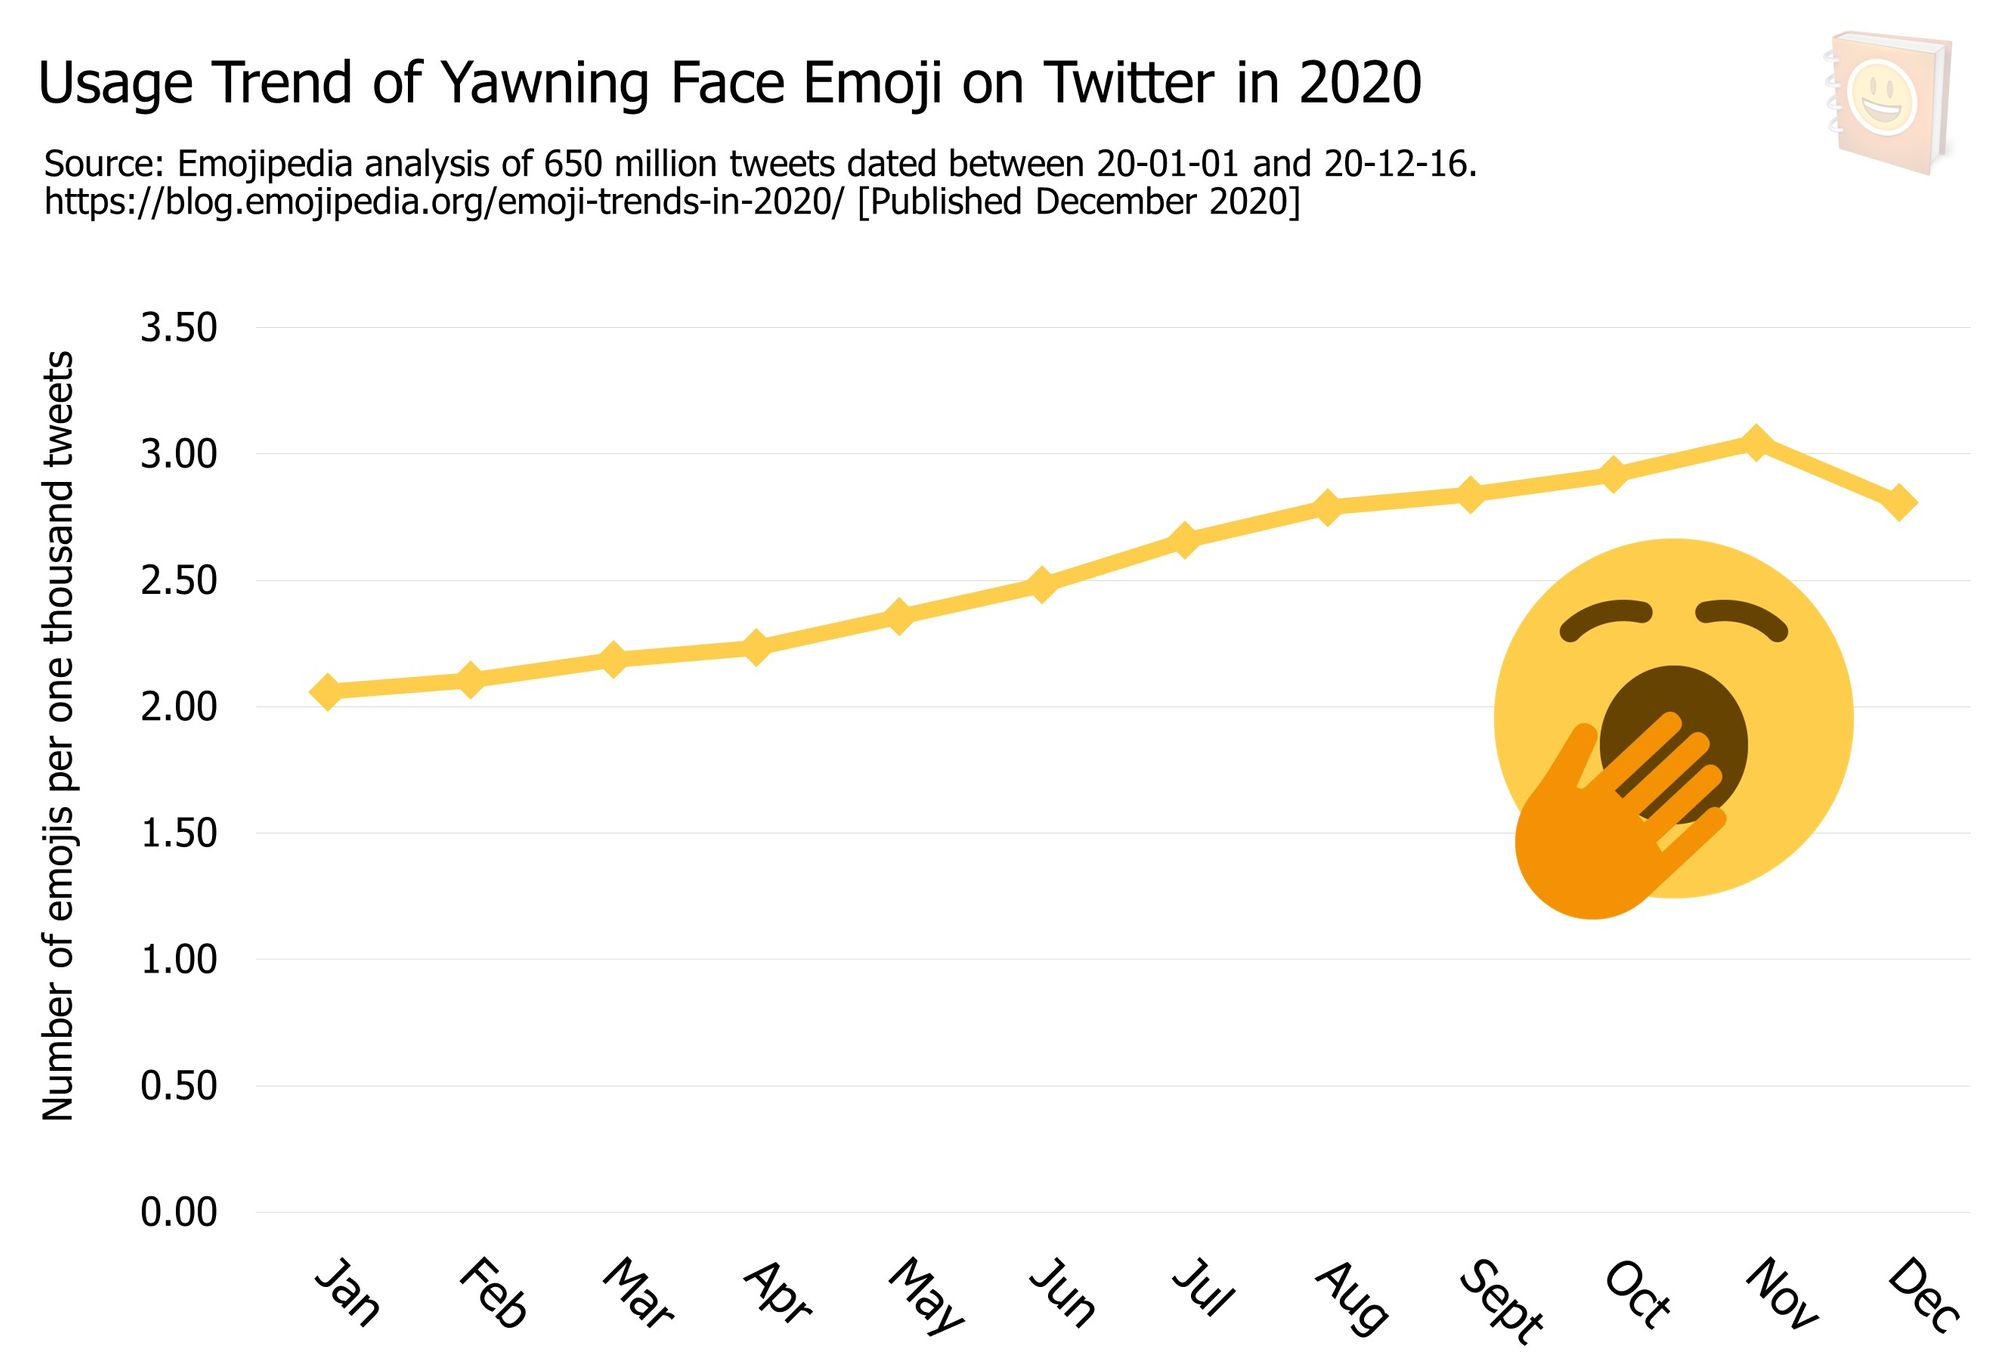 Emoji-Trends-In-2020---Usage-Trend-of-Yawning-Face-Emoji-on-Twitter-in-2020